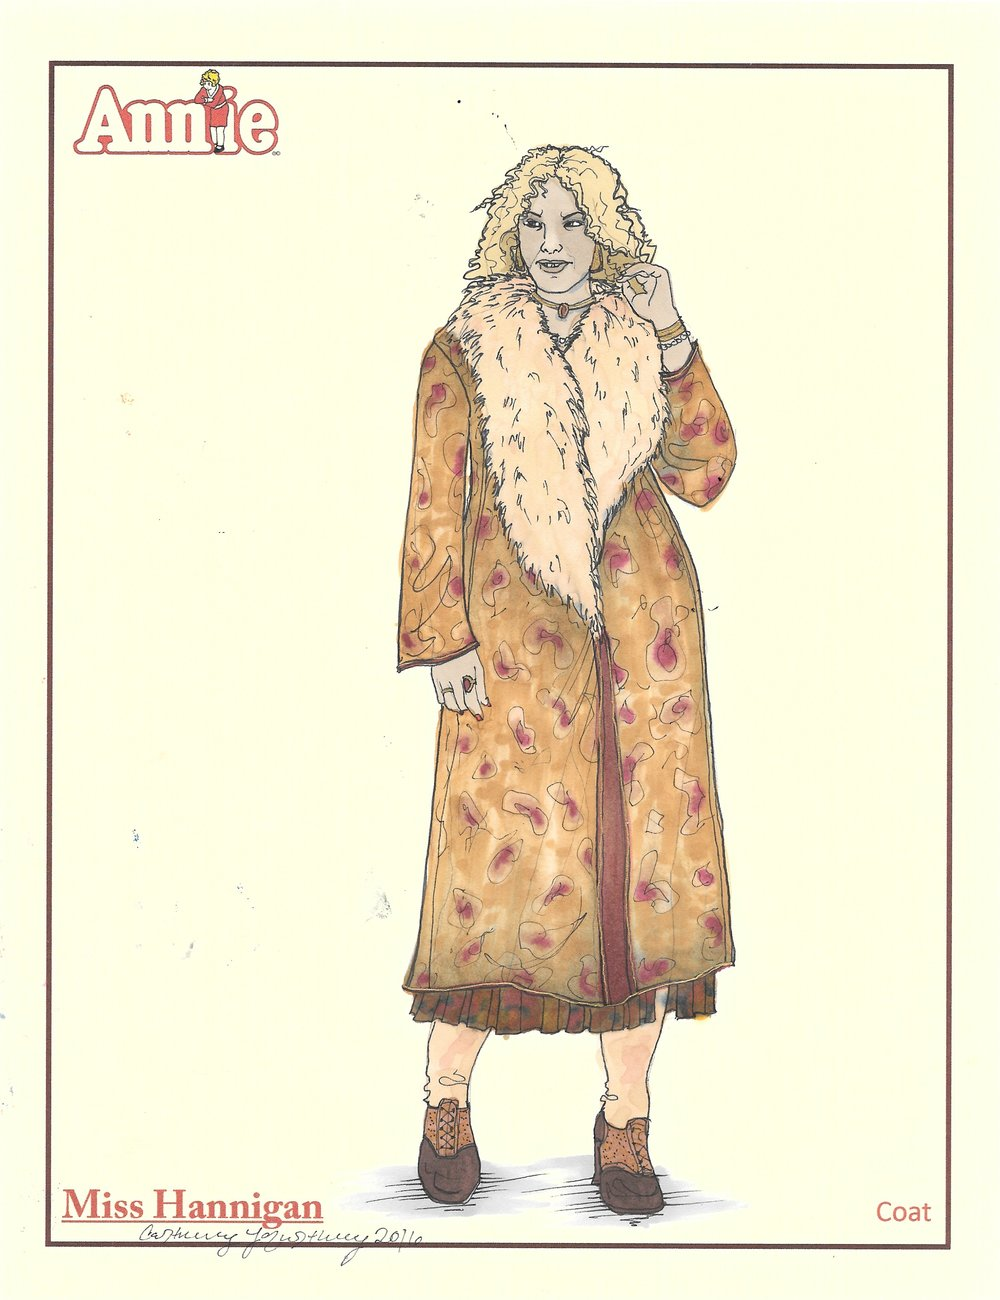 Miss Hannigan: Coat